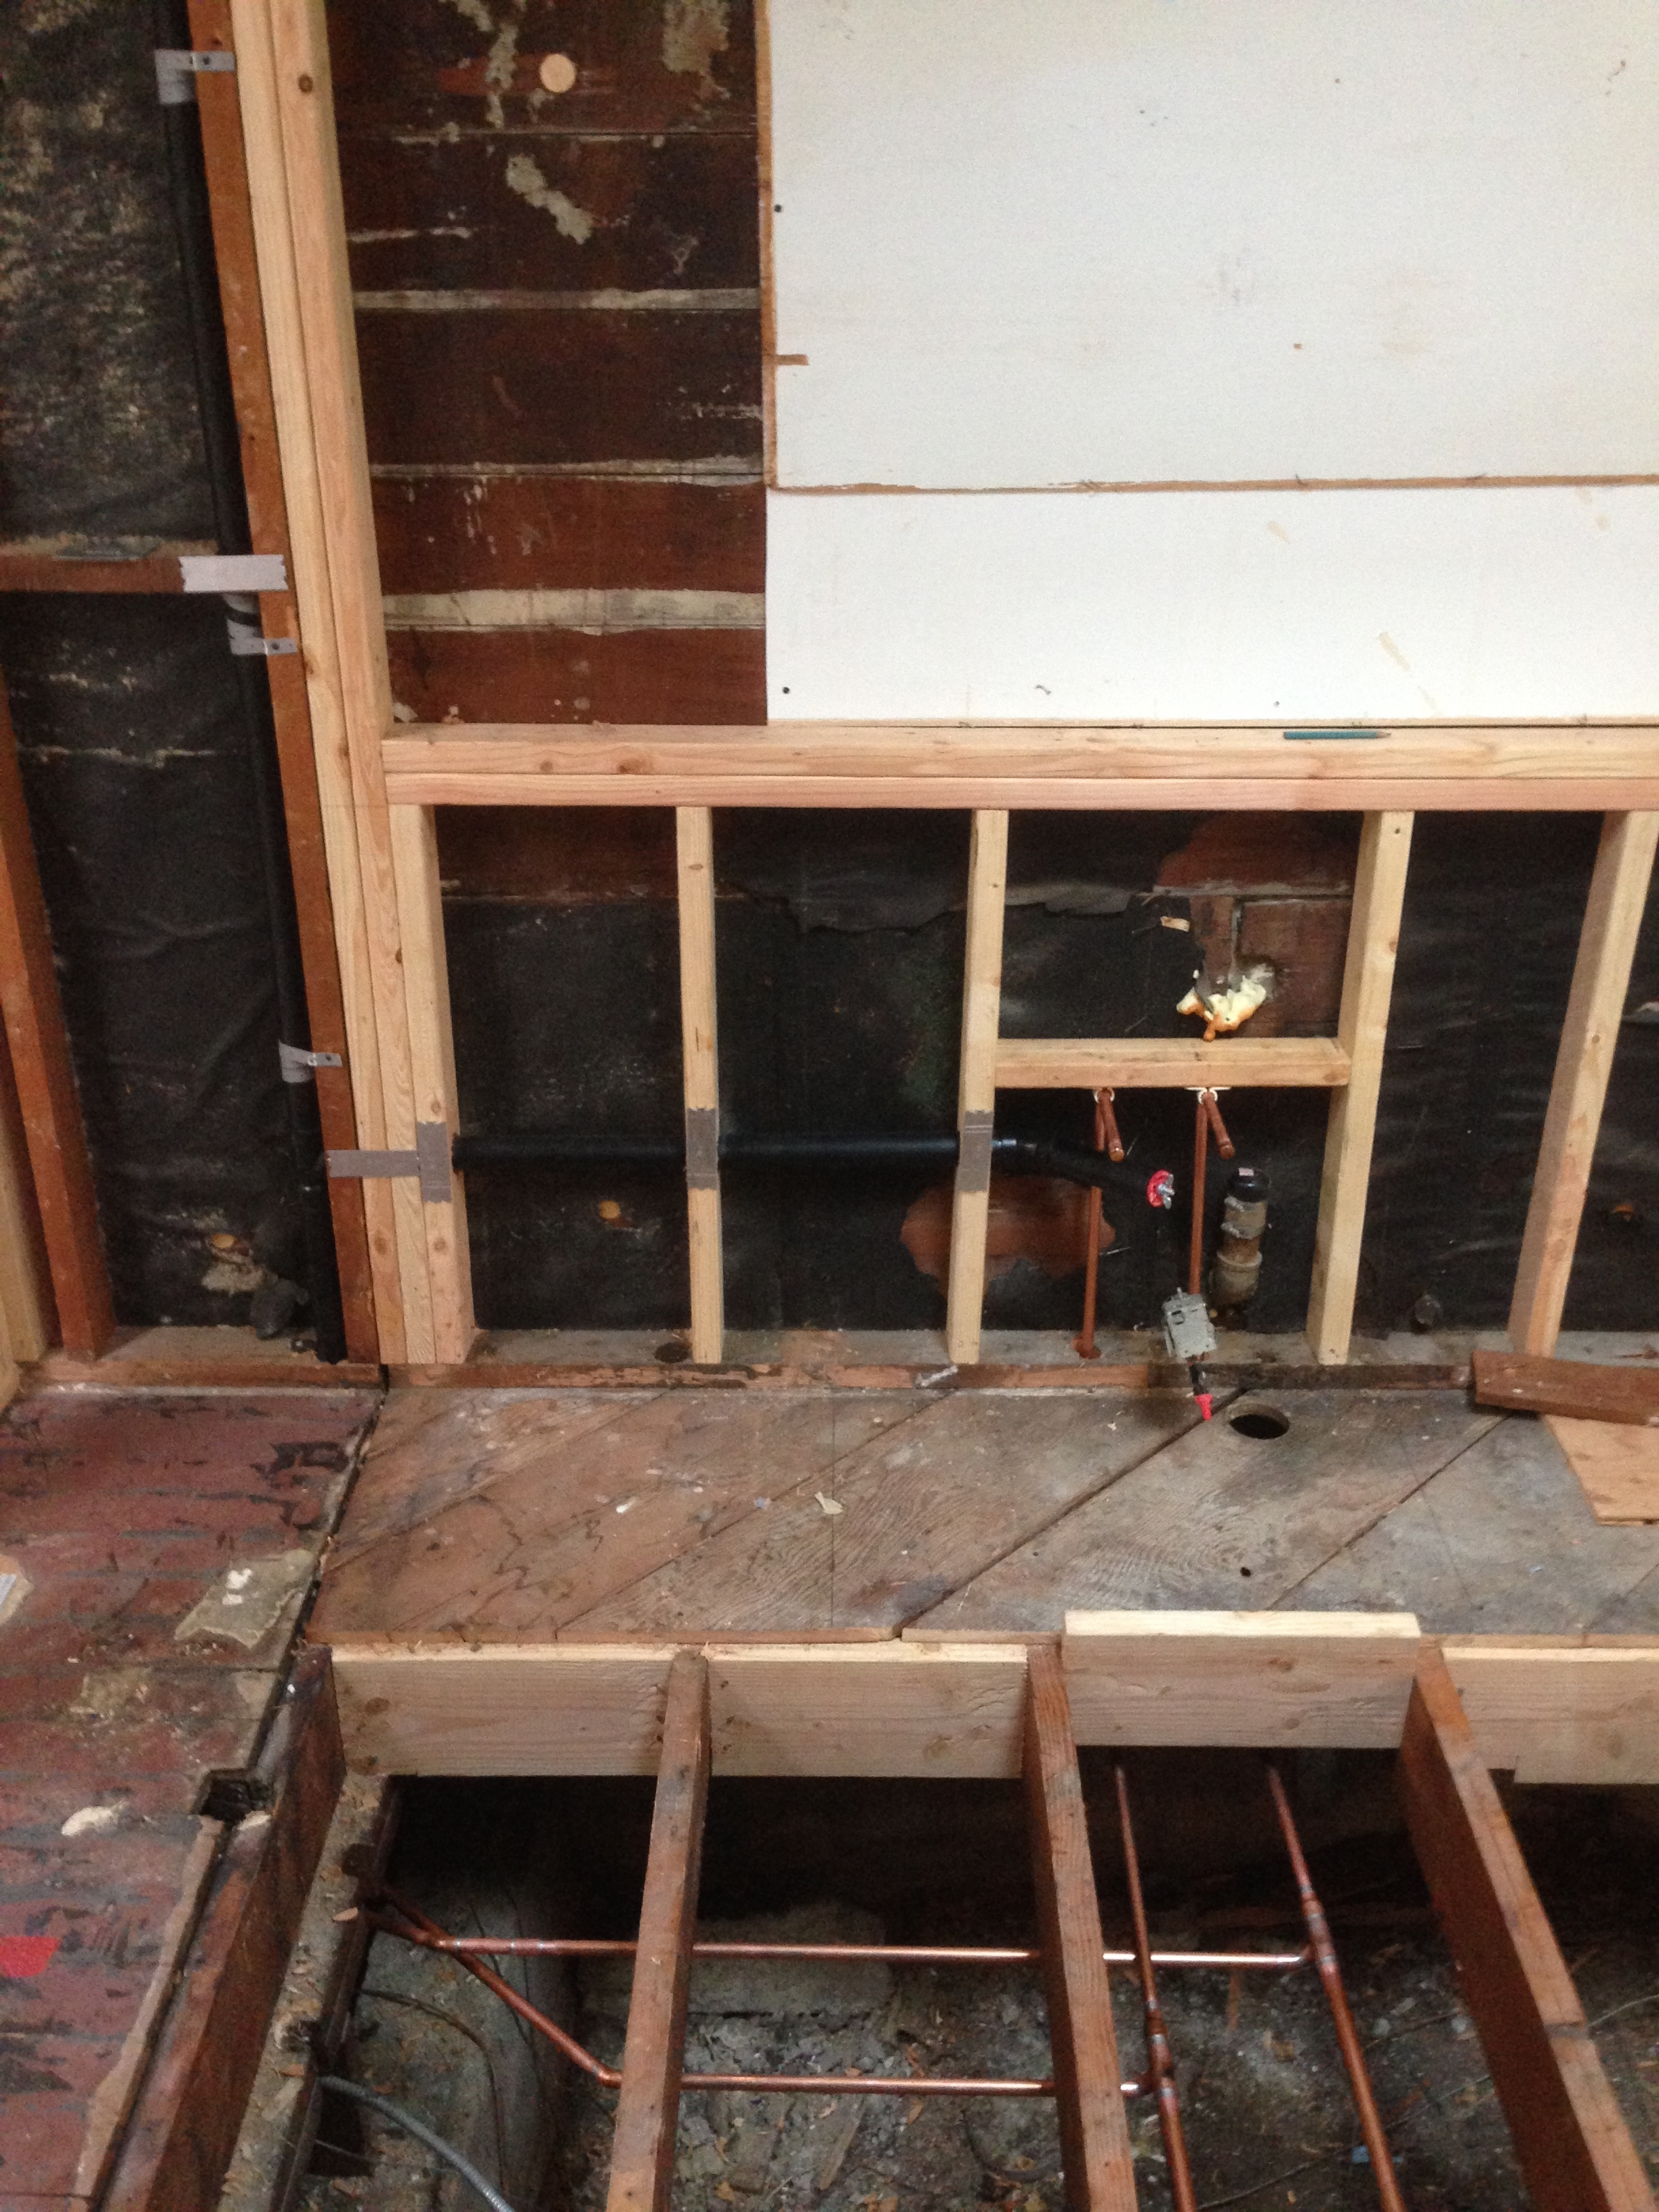 All new copper supply lines and drains for kitchen sink